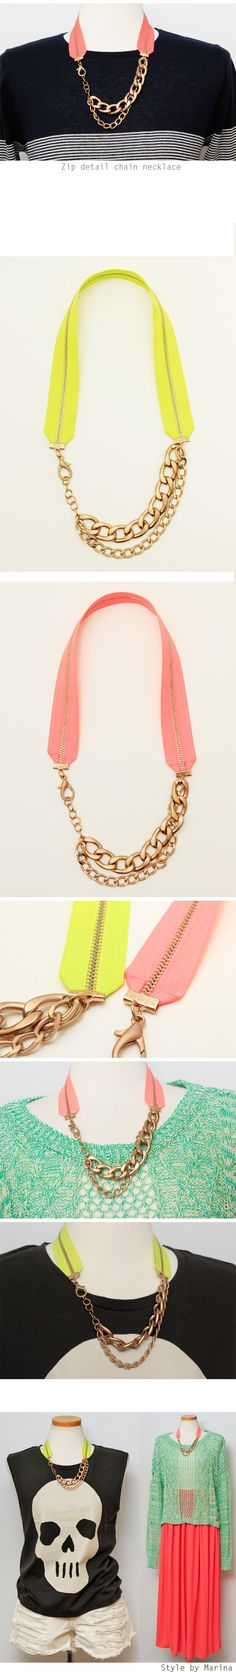 Zip detail necklace - accessories Style by Marina